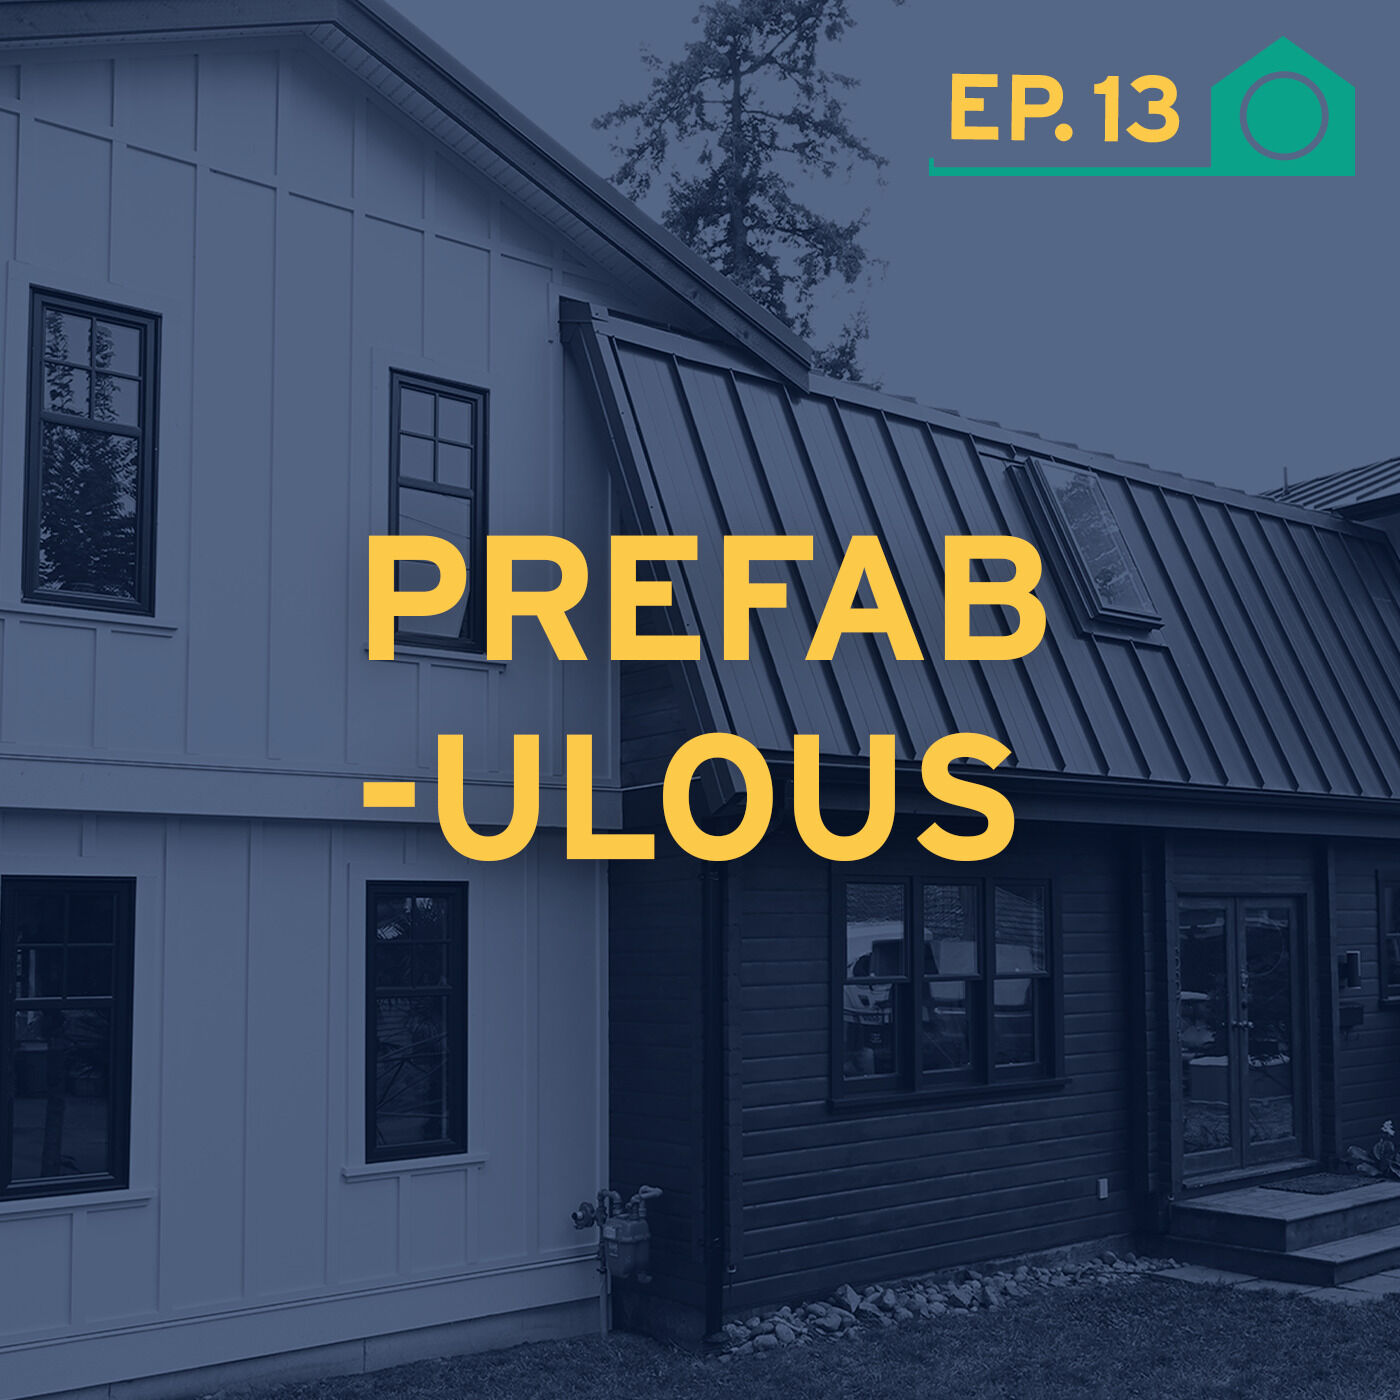 Prefab-ulous! Panelized and factory built homes!